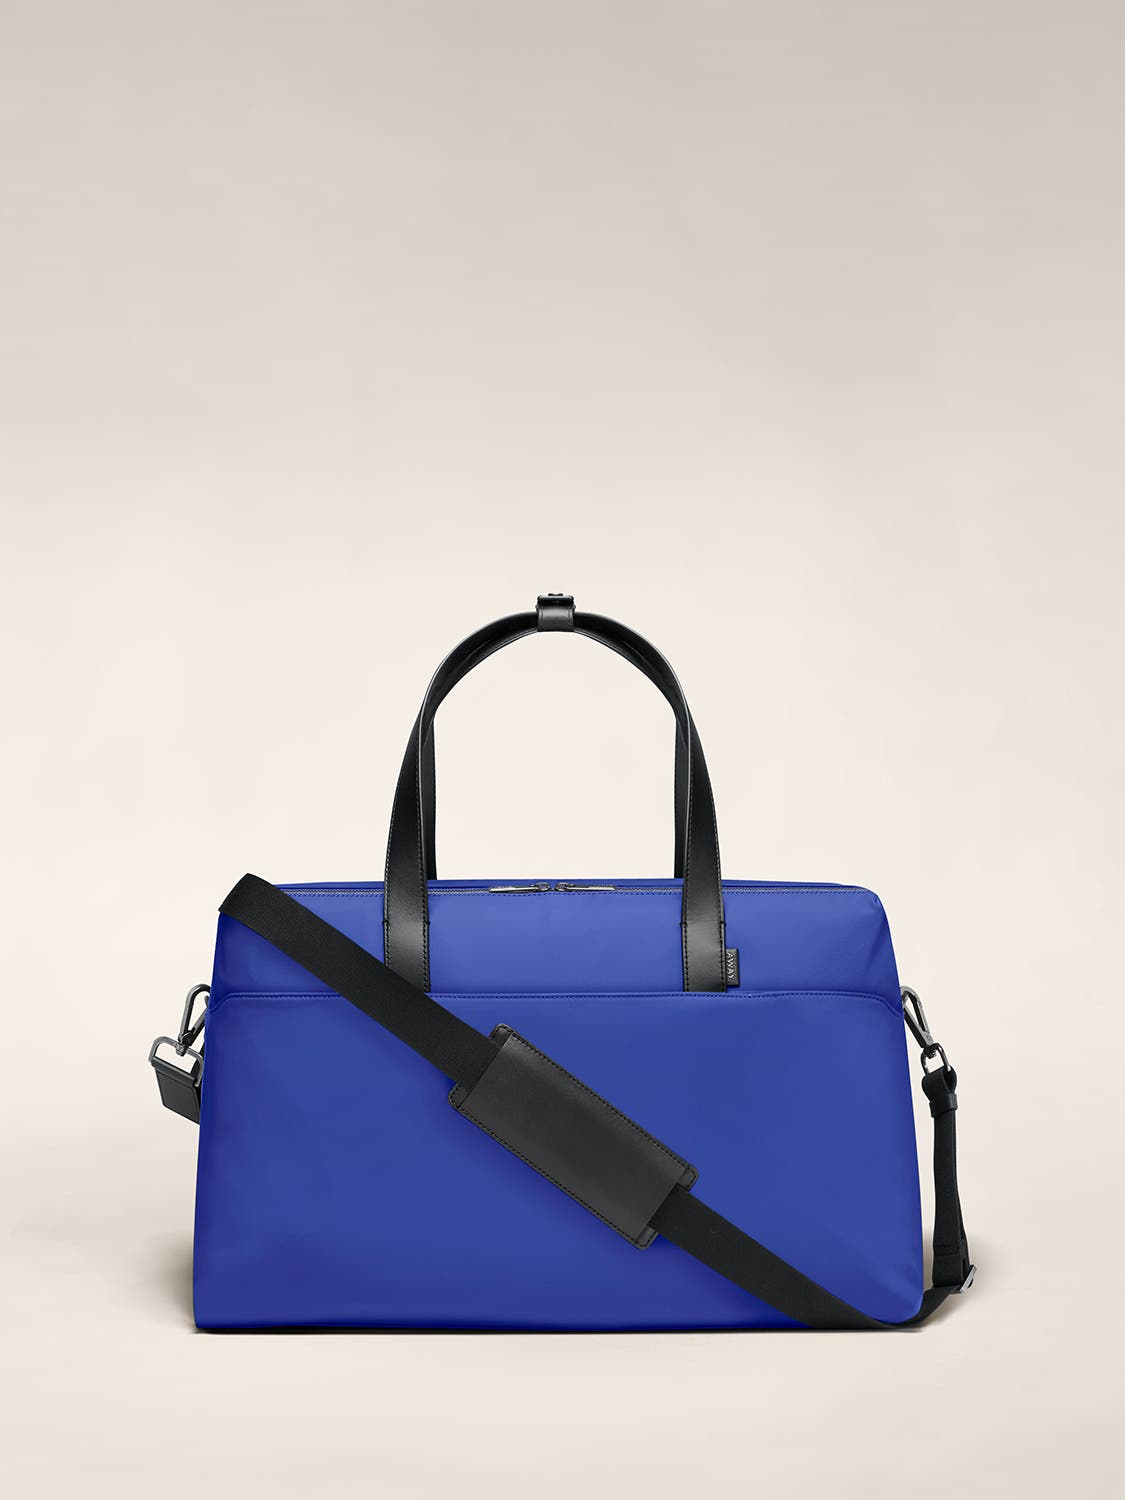 Large duffle bag in cobalt with raised handles and shoulder strap across the bag.